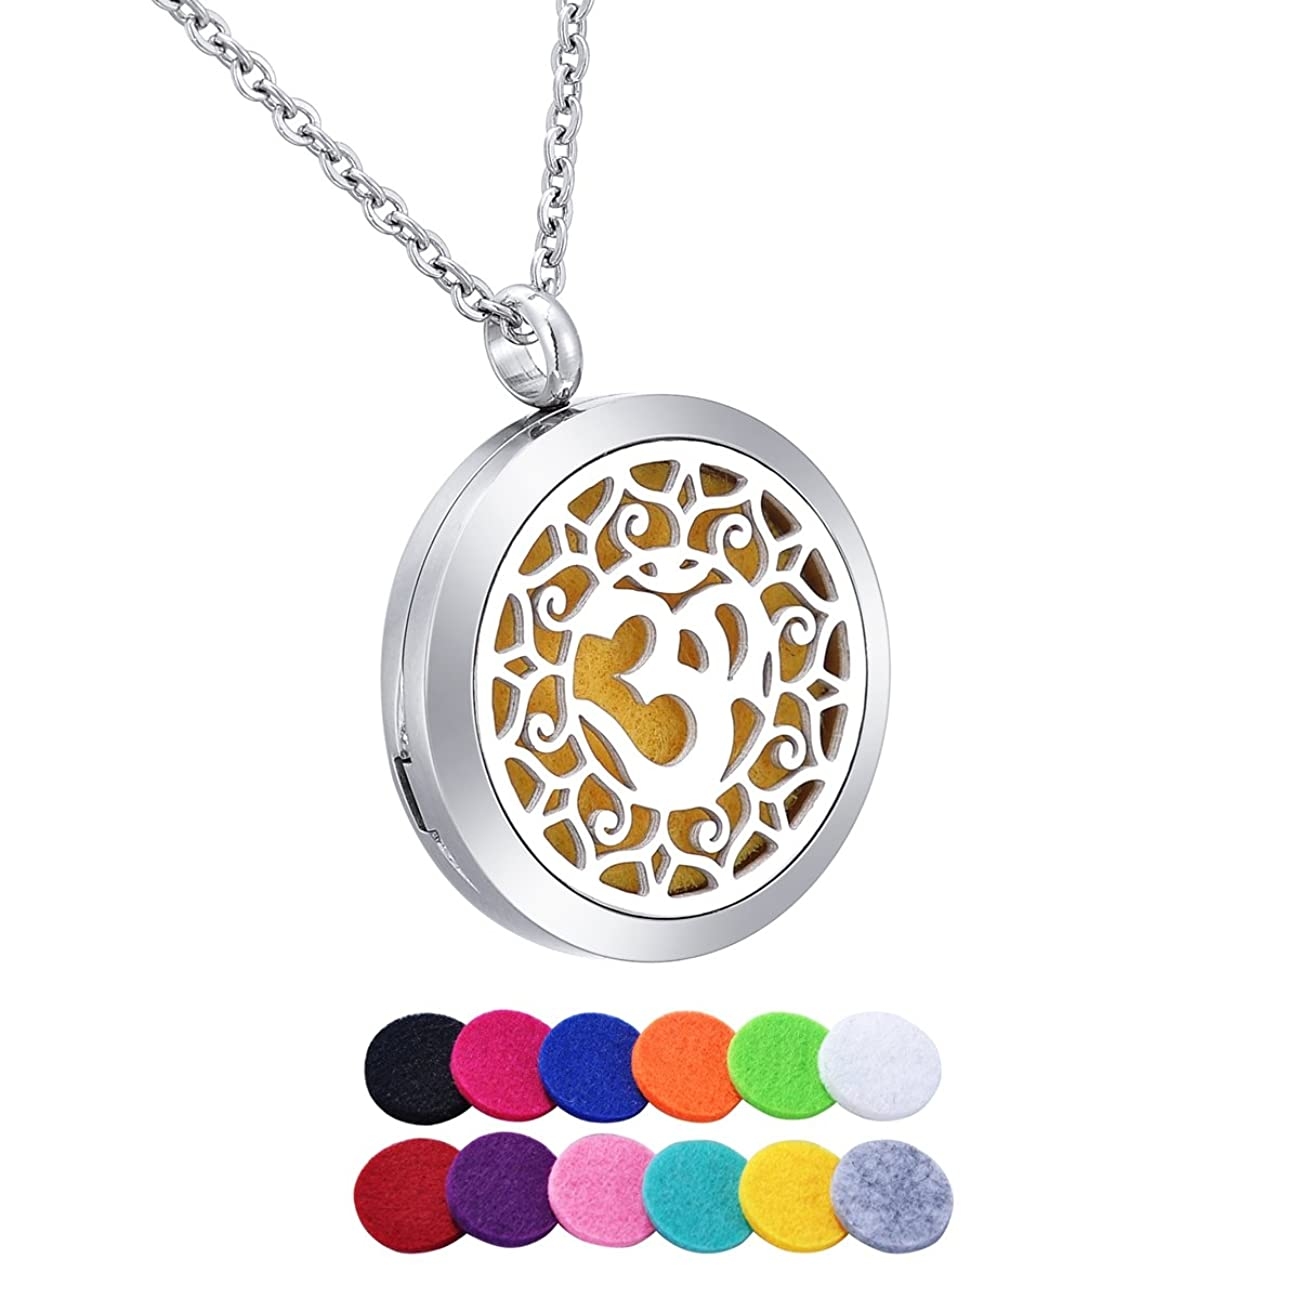 HooAMI Aromatherapy Essential Oil Diffuser Necklace - Yoga Aum Om Ohm Lotus Pendant Locket Jewelry,12 Refill Pads